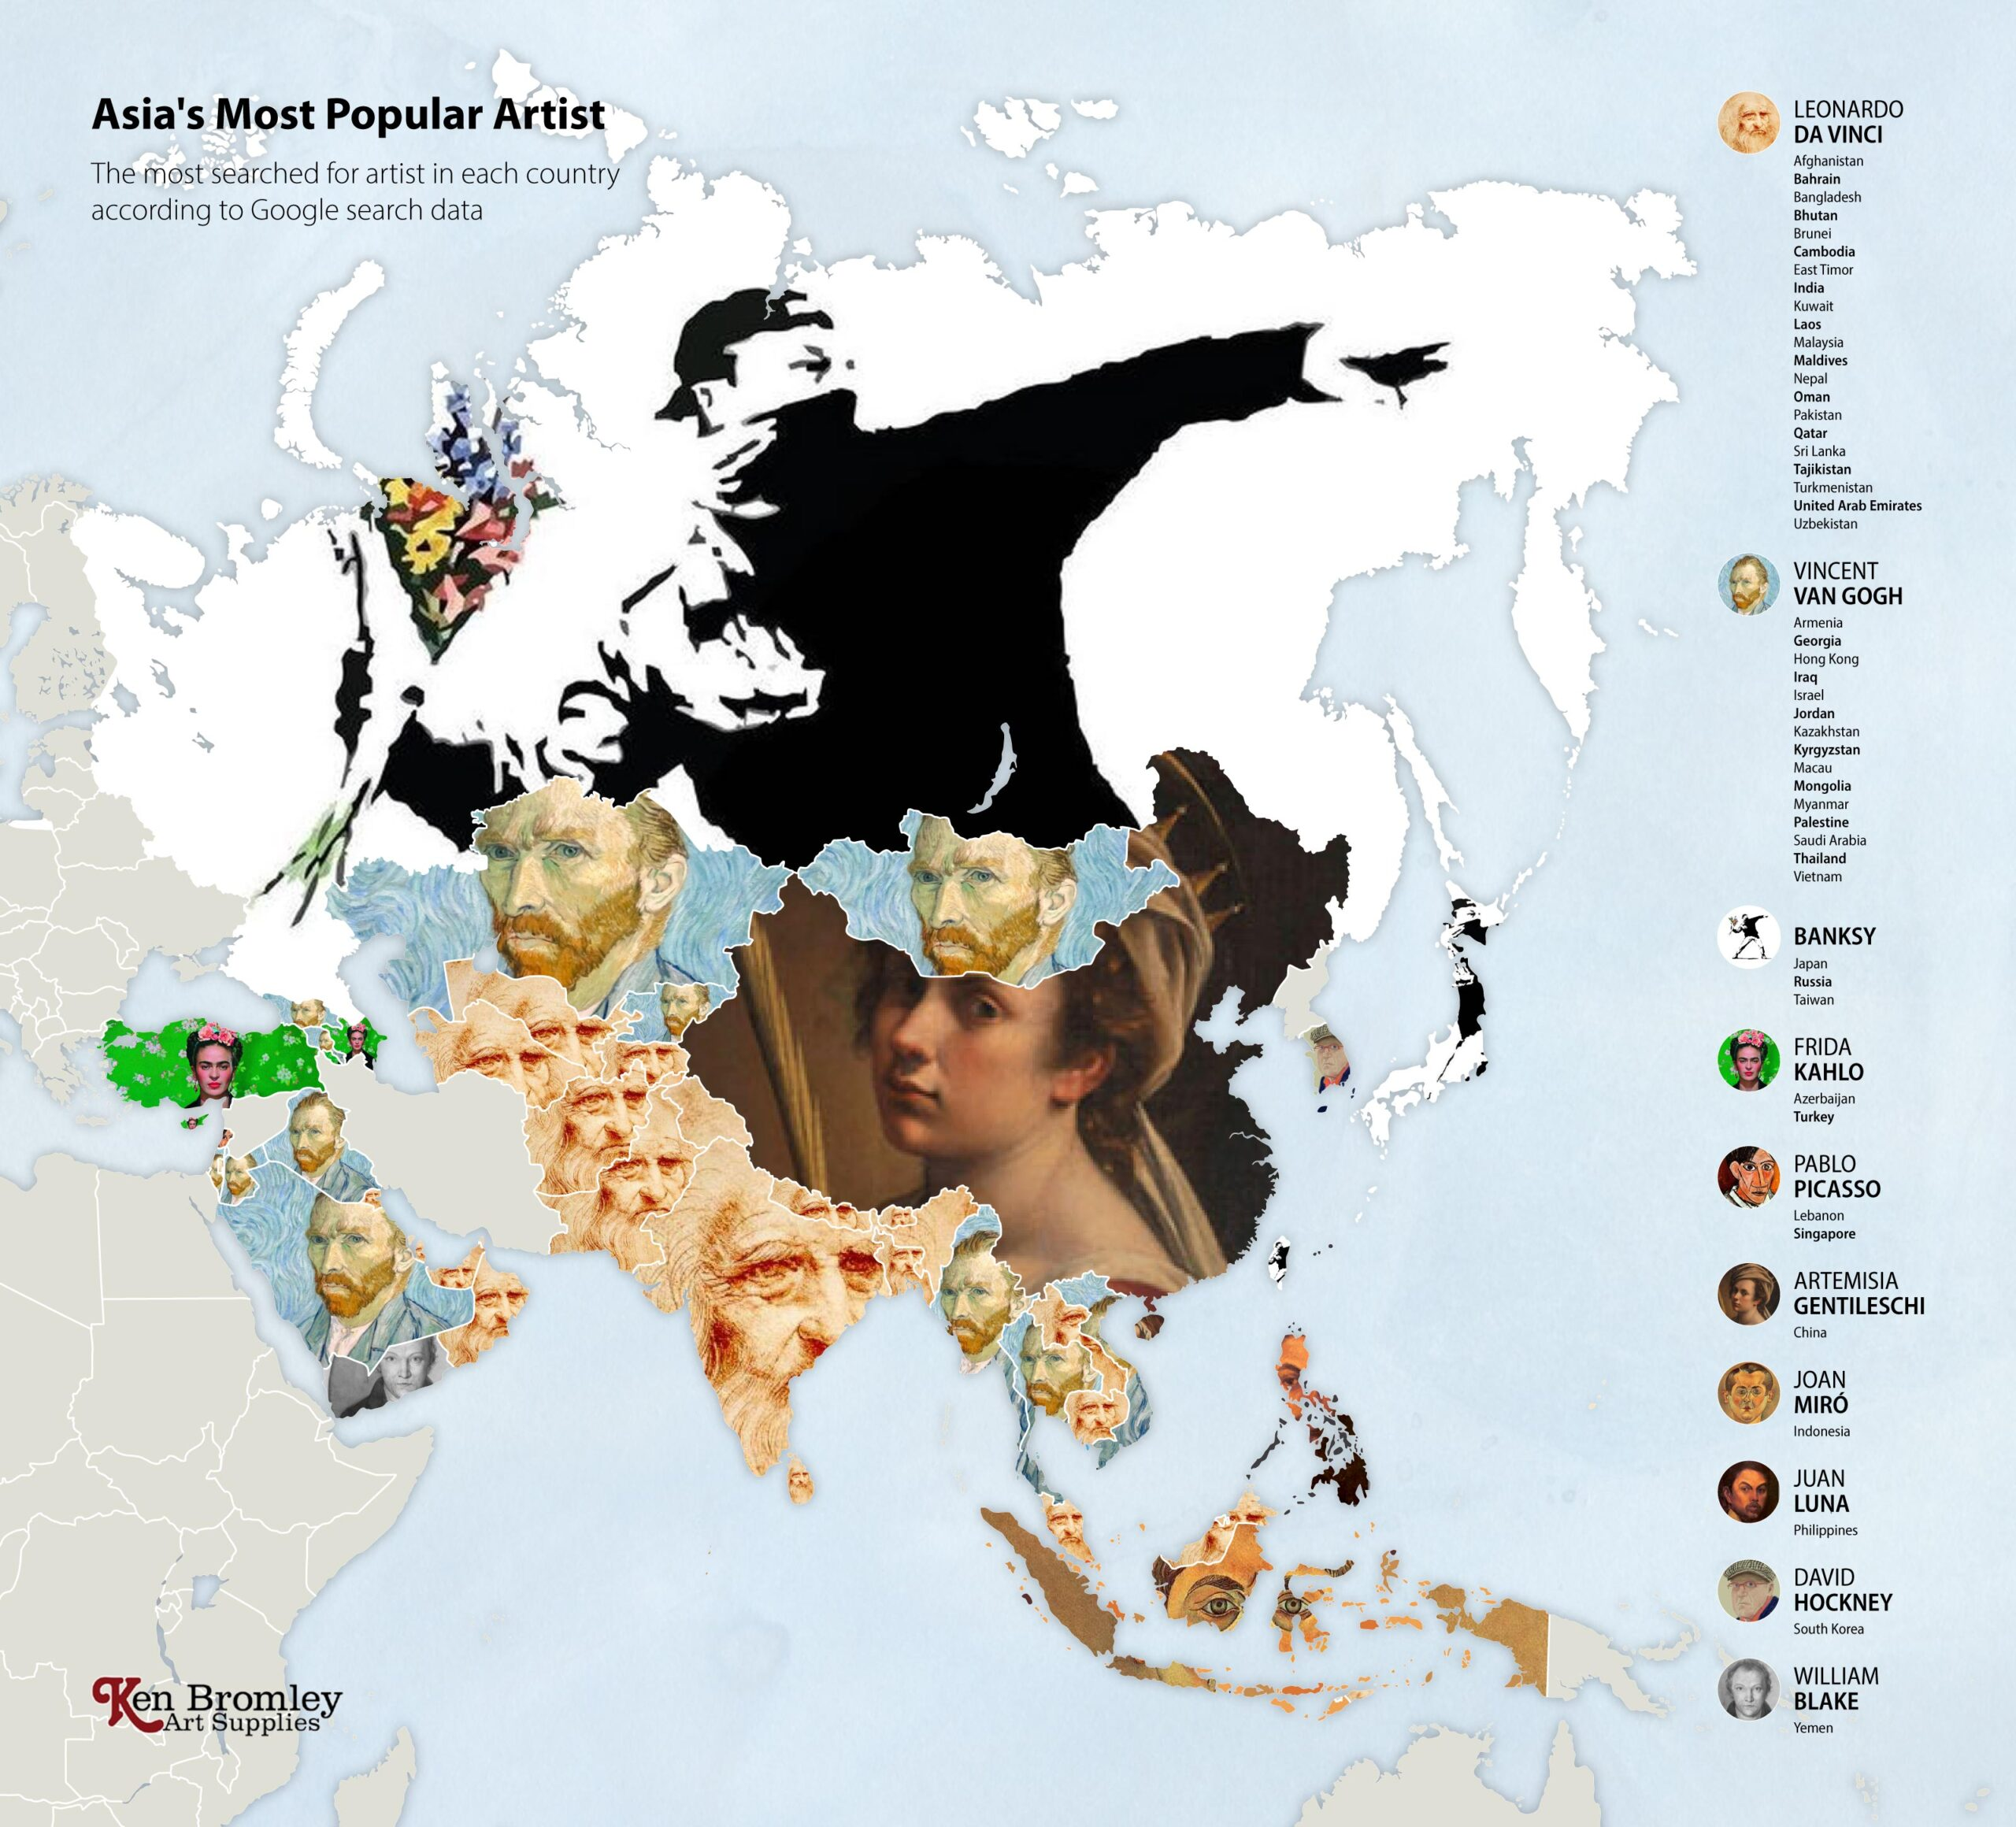 The most popular artists in Asia